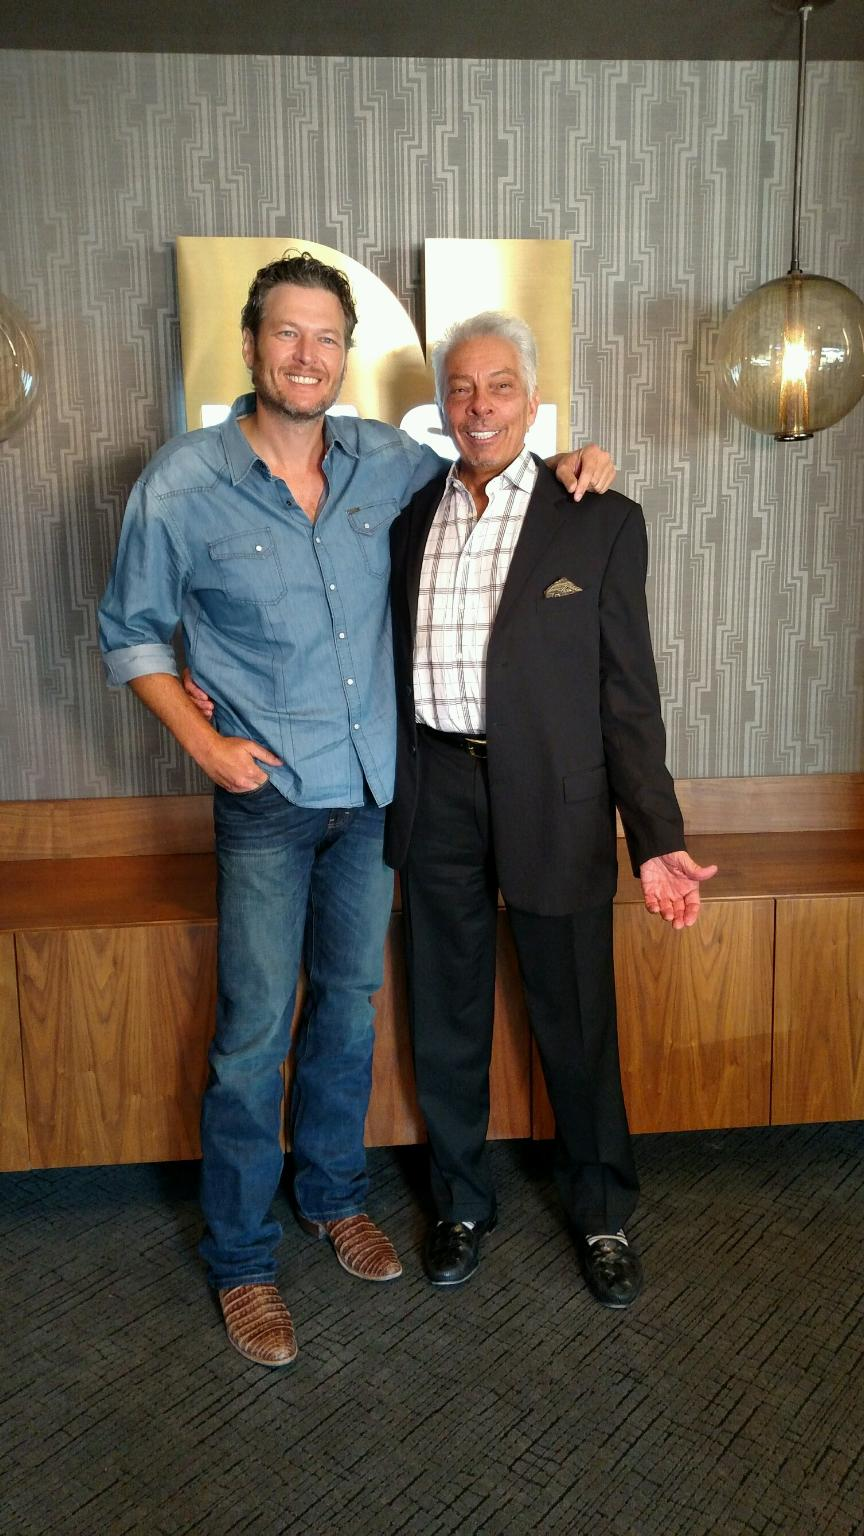 Mike McVay and Blake Shelton at the NASH Campus